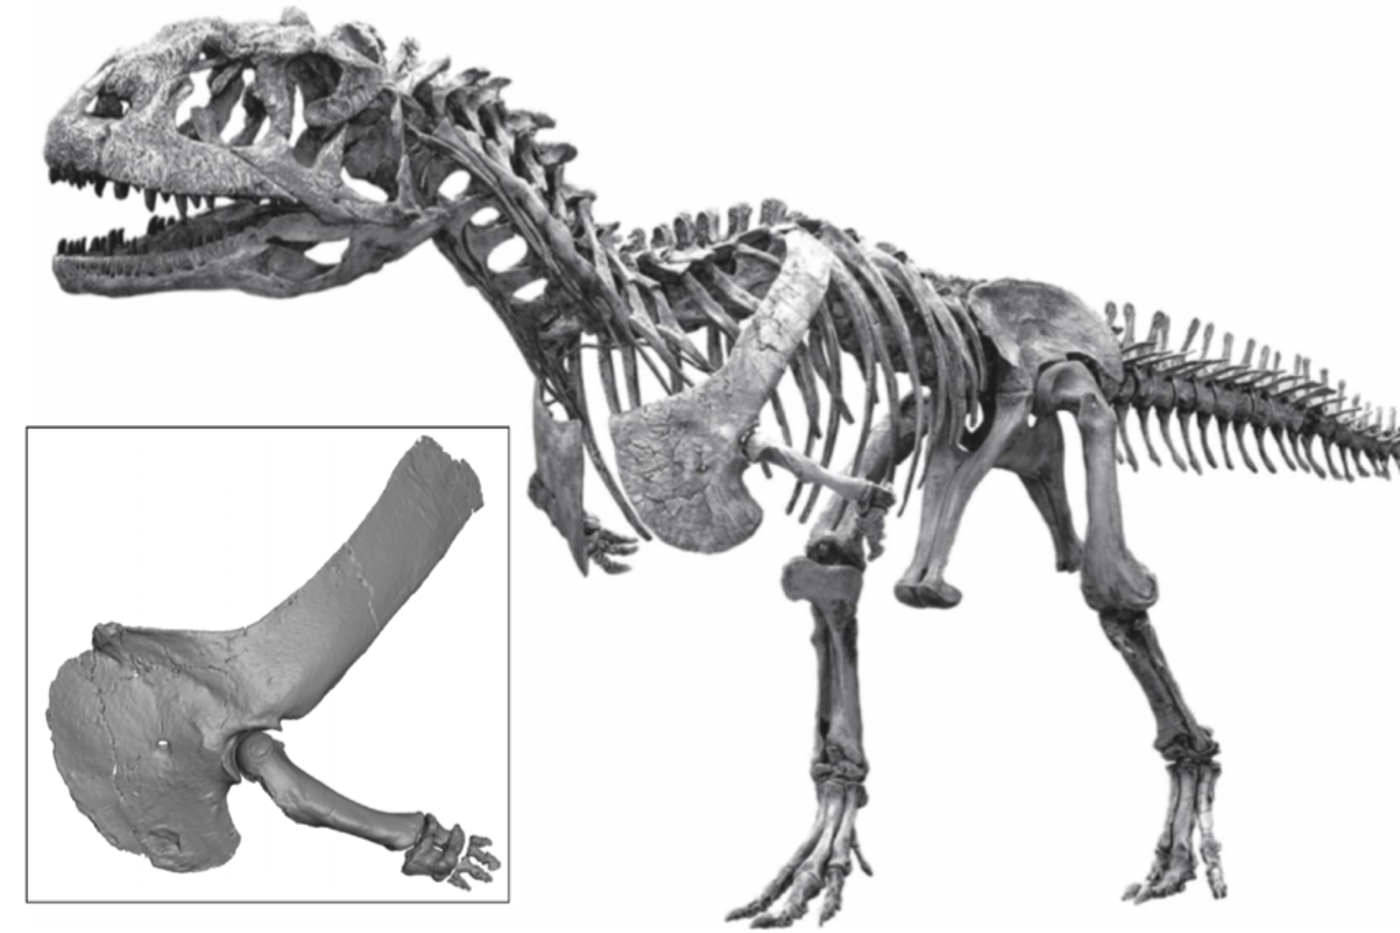 Black and white dinosaur skeleton, with an inset of its small arm and hand